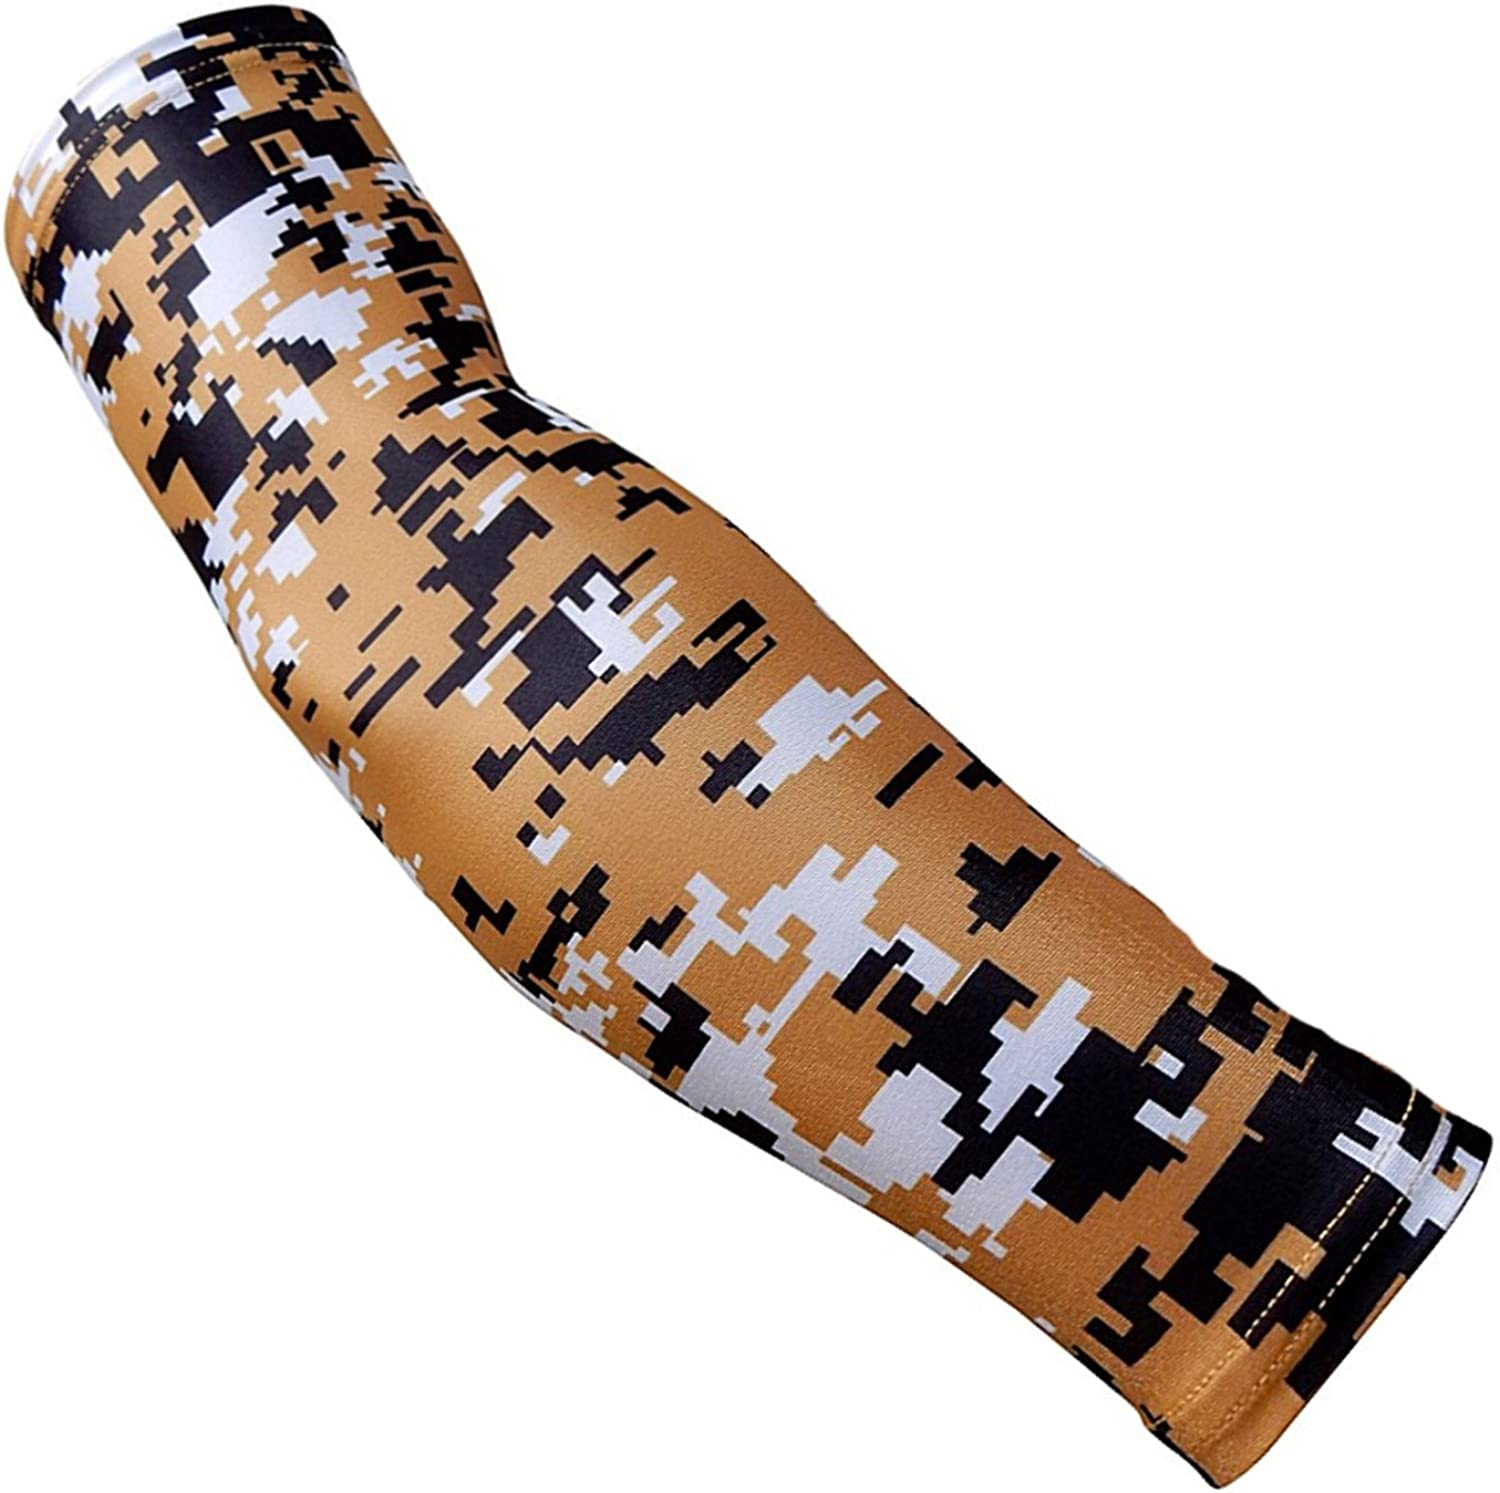 40 Styles and Colors Nexxgen Sports Apparel Compression Arm Sleeve Single